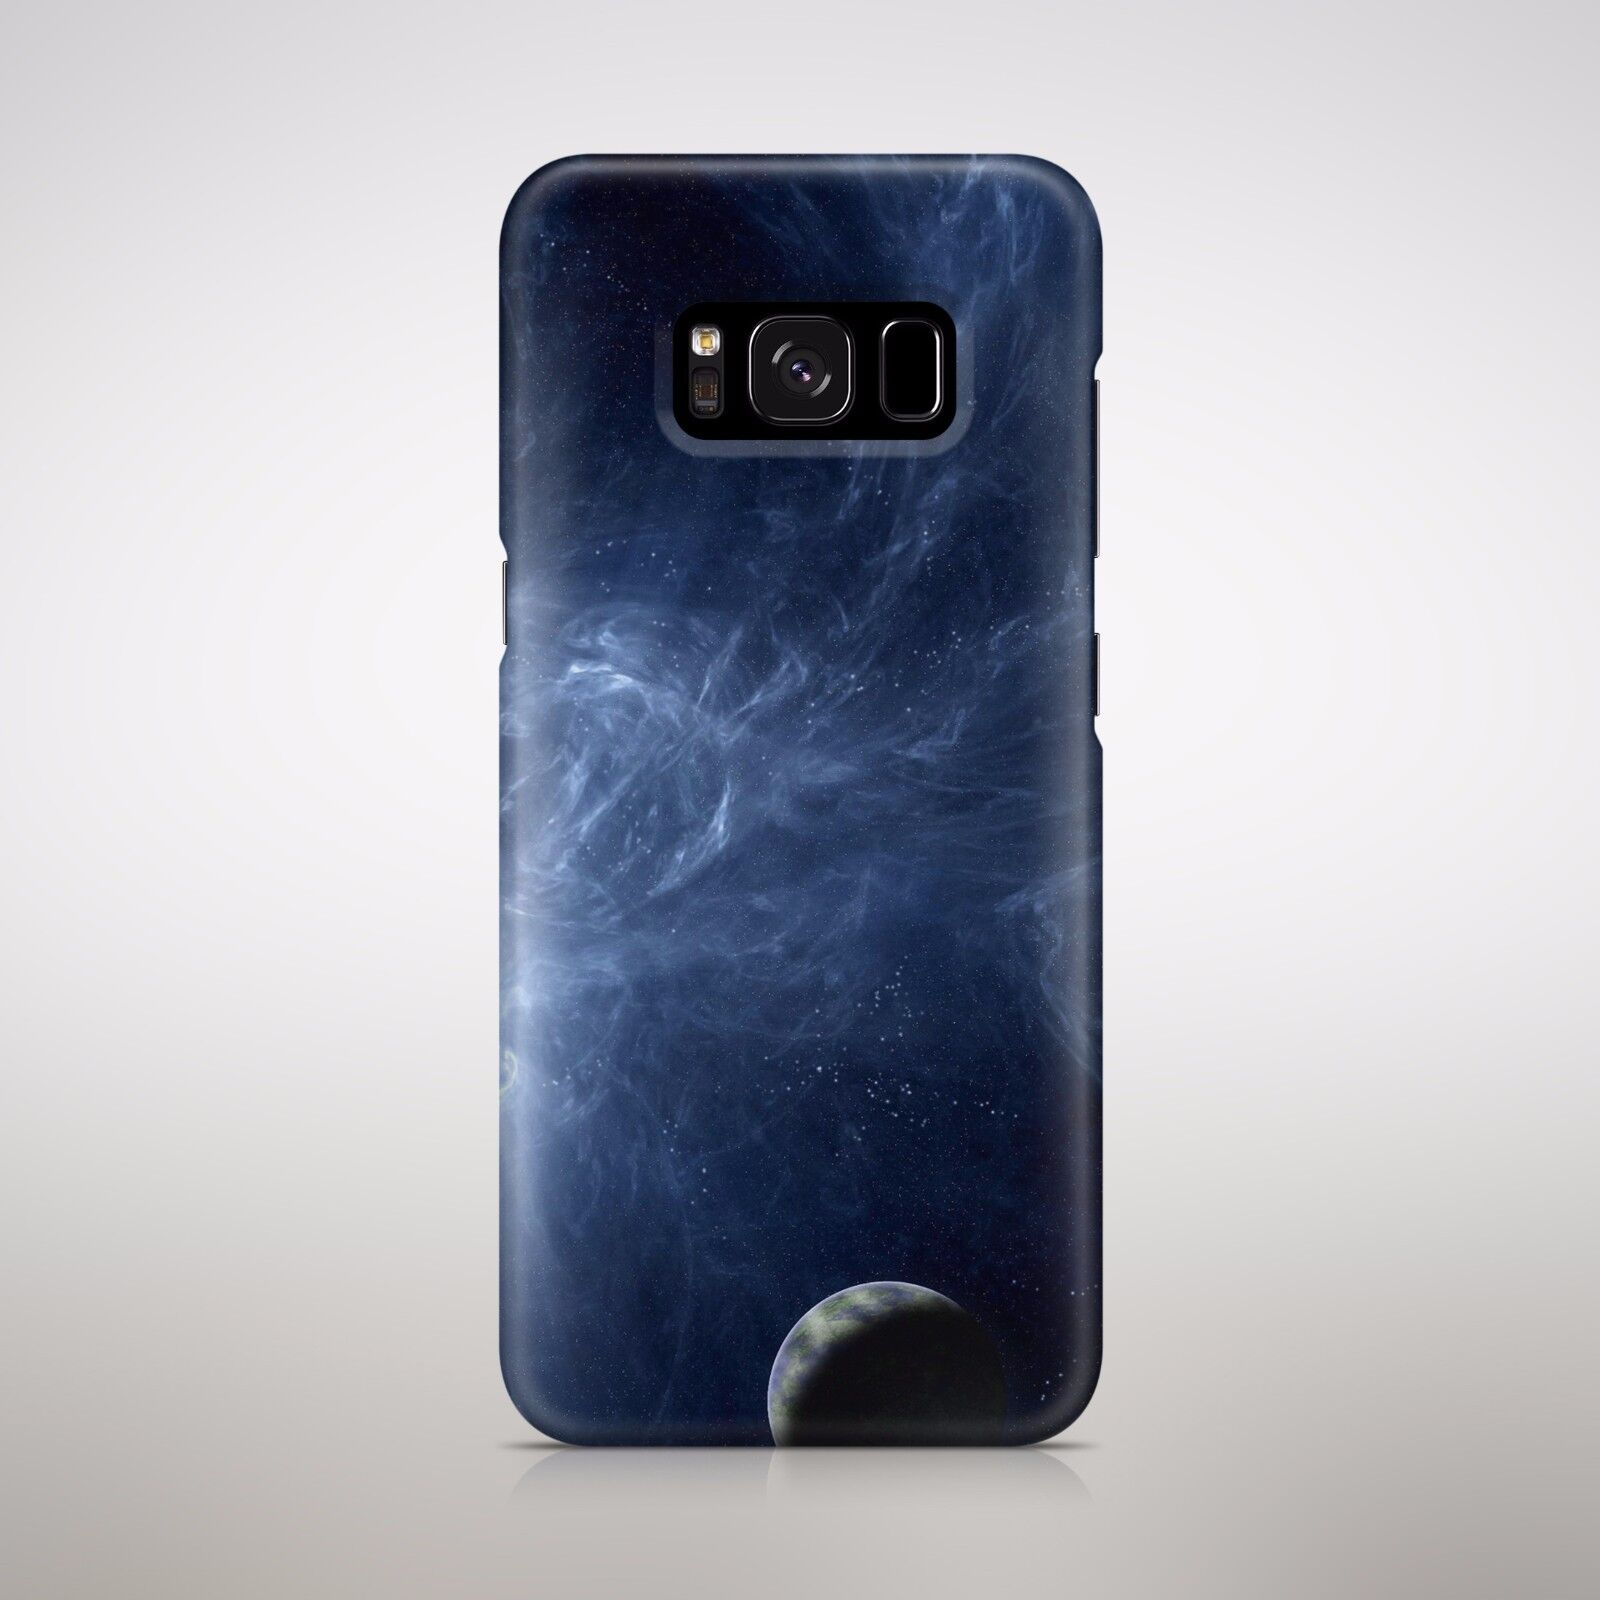 separation shoes b5a89 f2ae2 Details about Blue Galaxy Waves Planets Stars Universe Cosmos Outer Space  Phone Case Cover